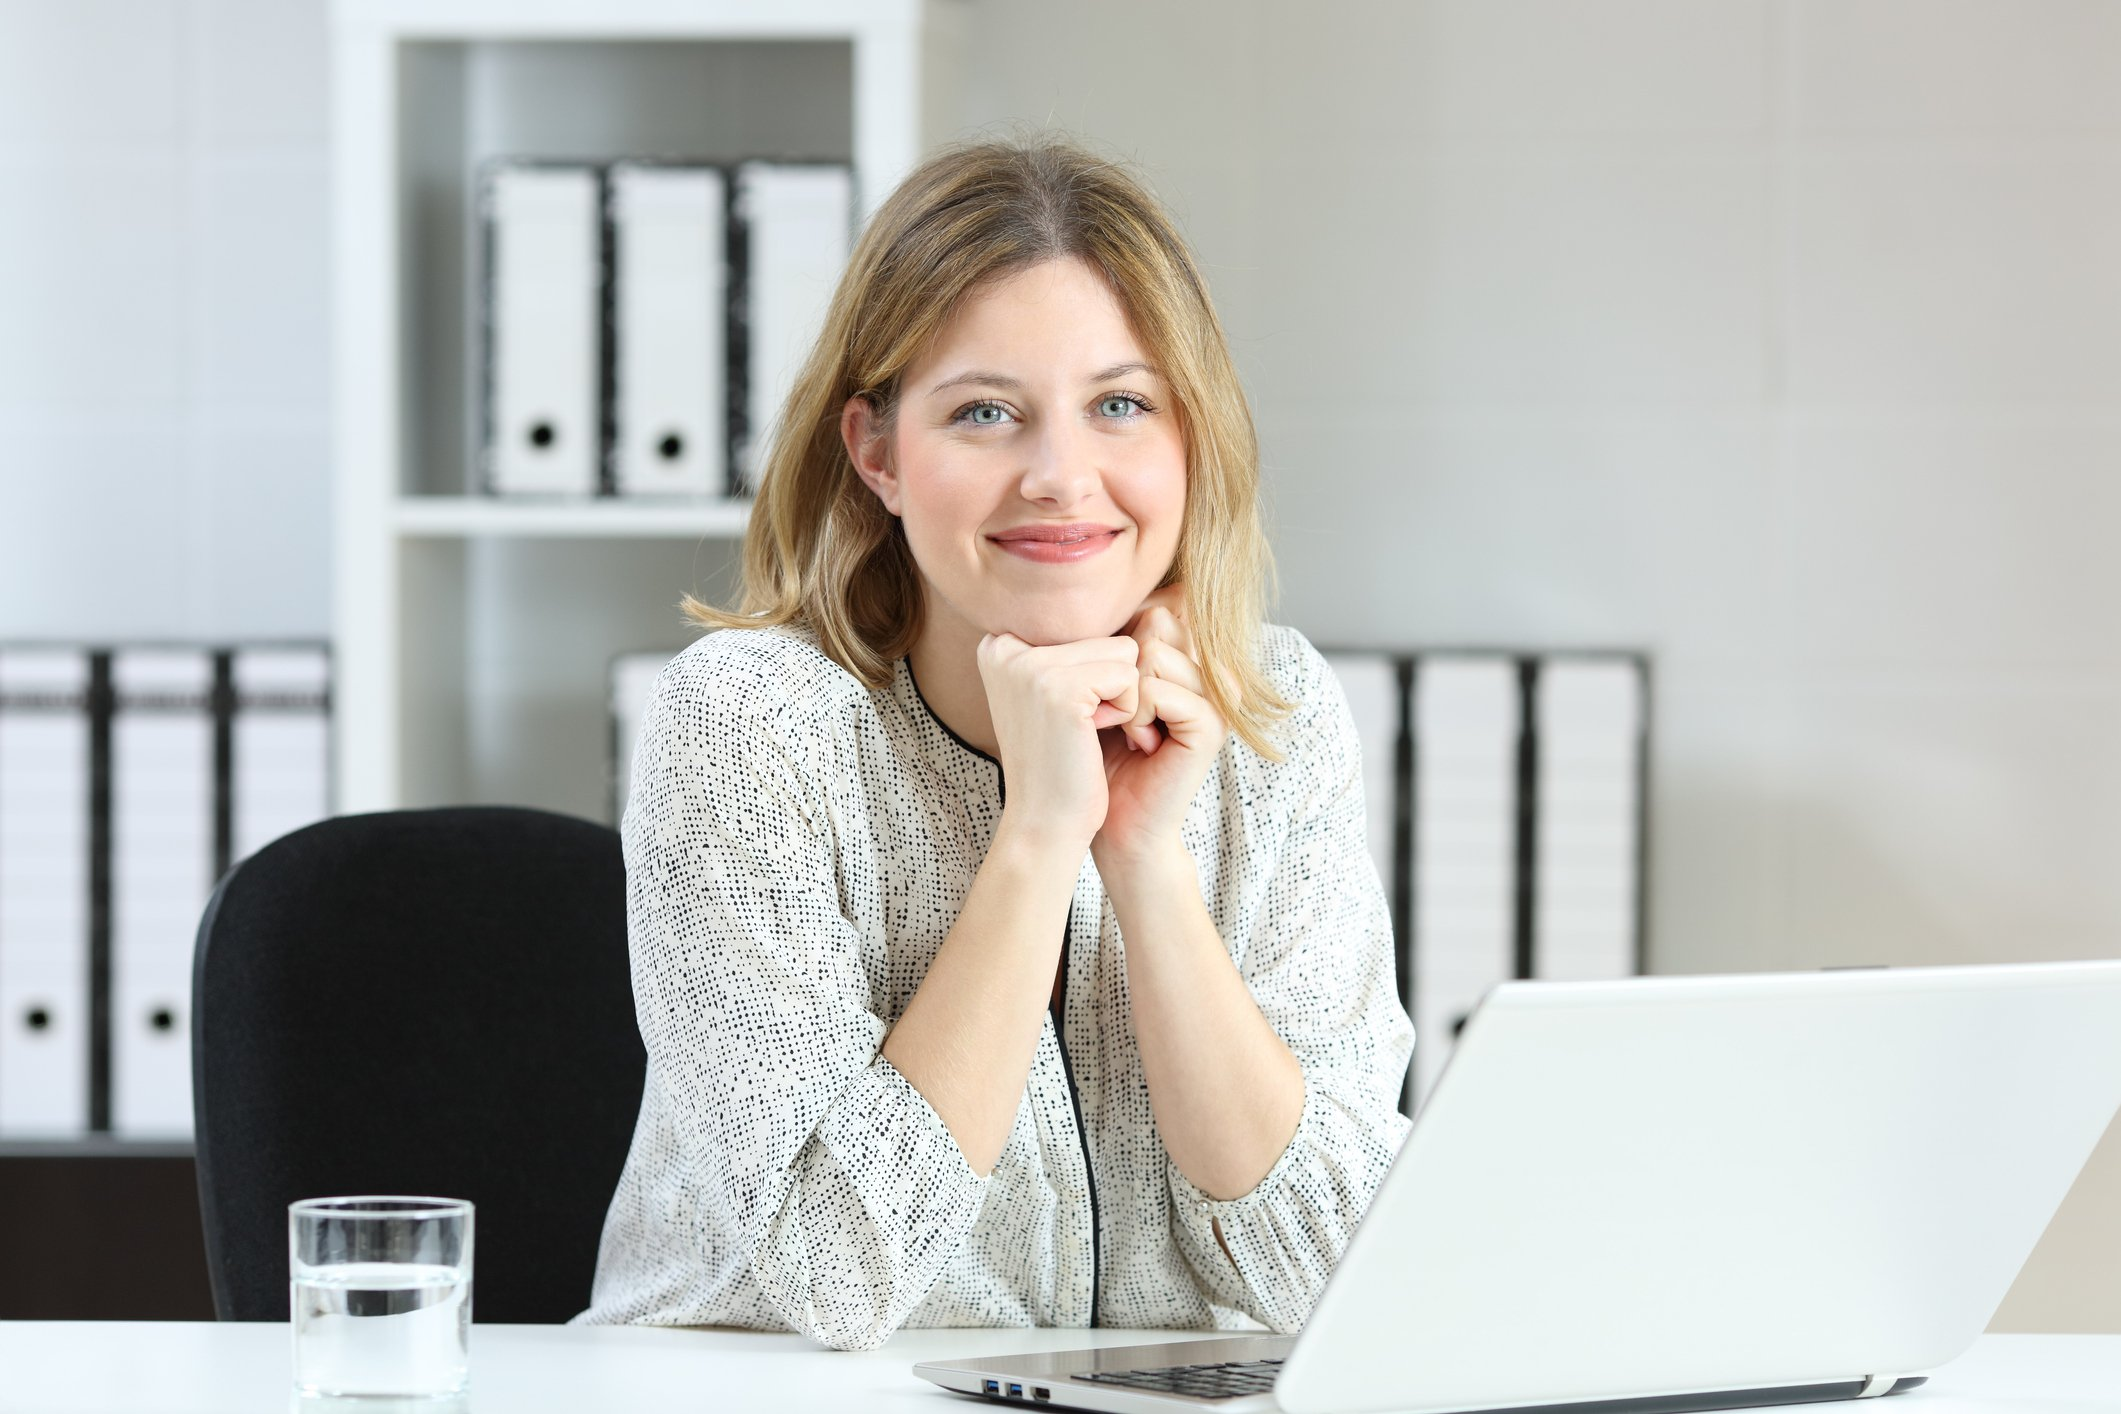 Smiling young woman at laptop